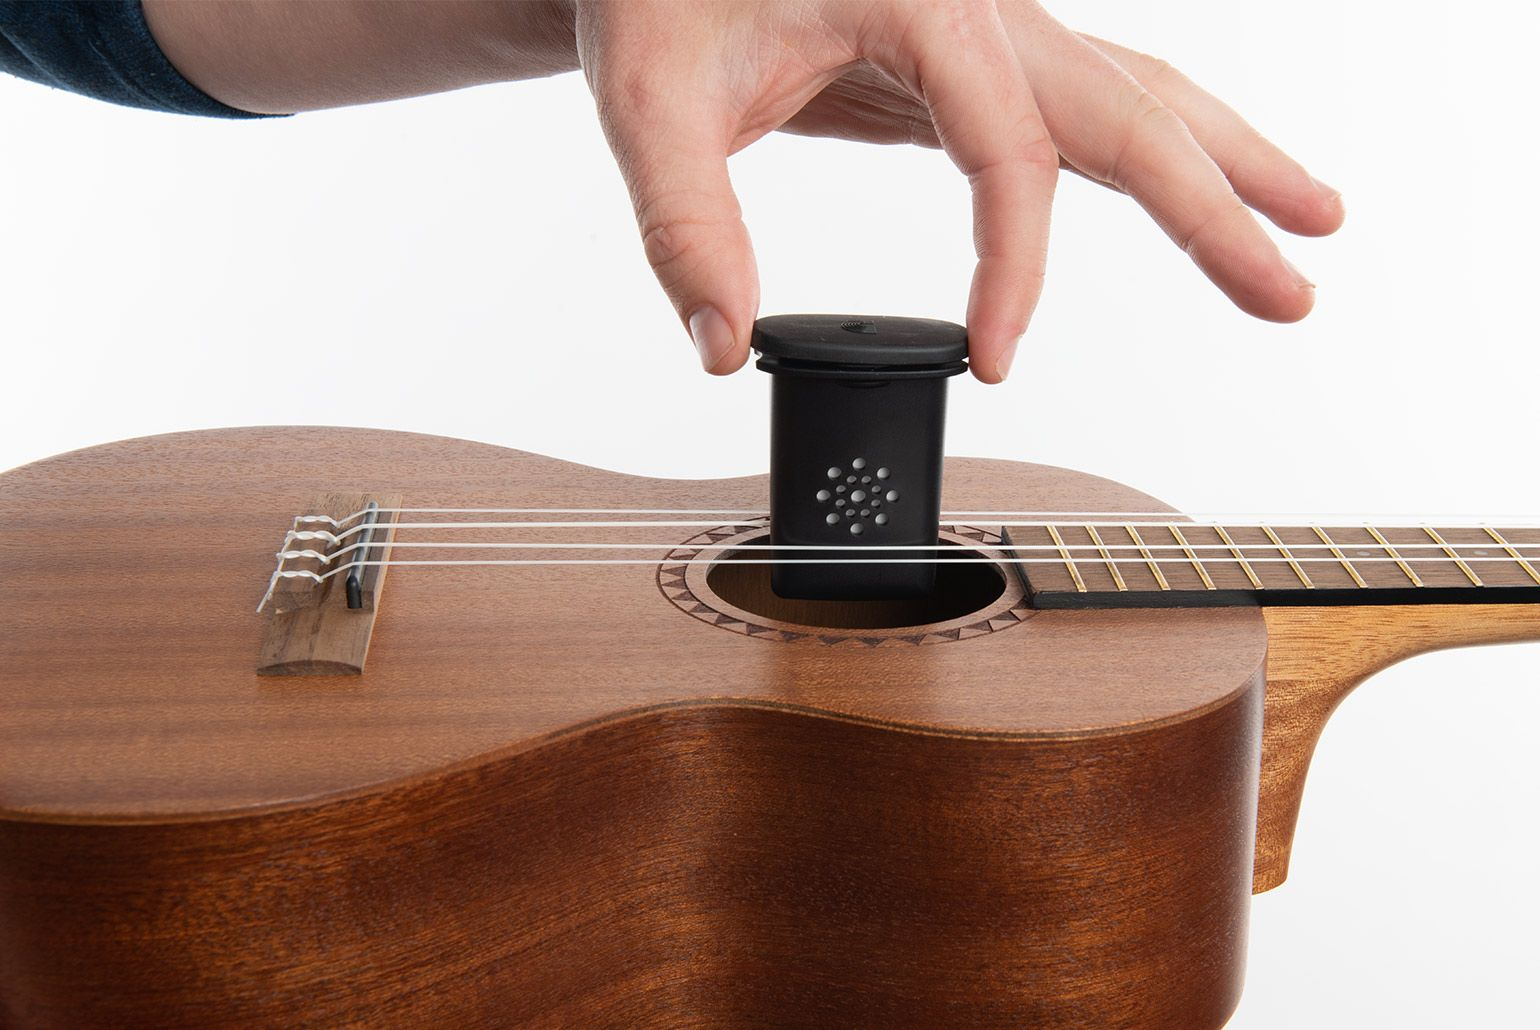 The Top 3 Reasons You Should Consider Getting a Ukulele Humidifier